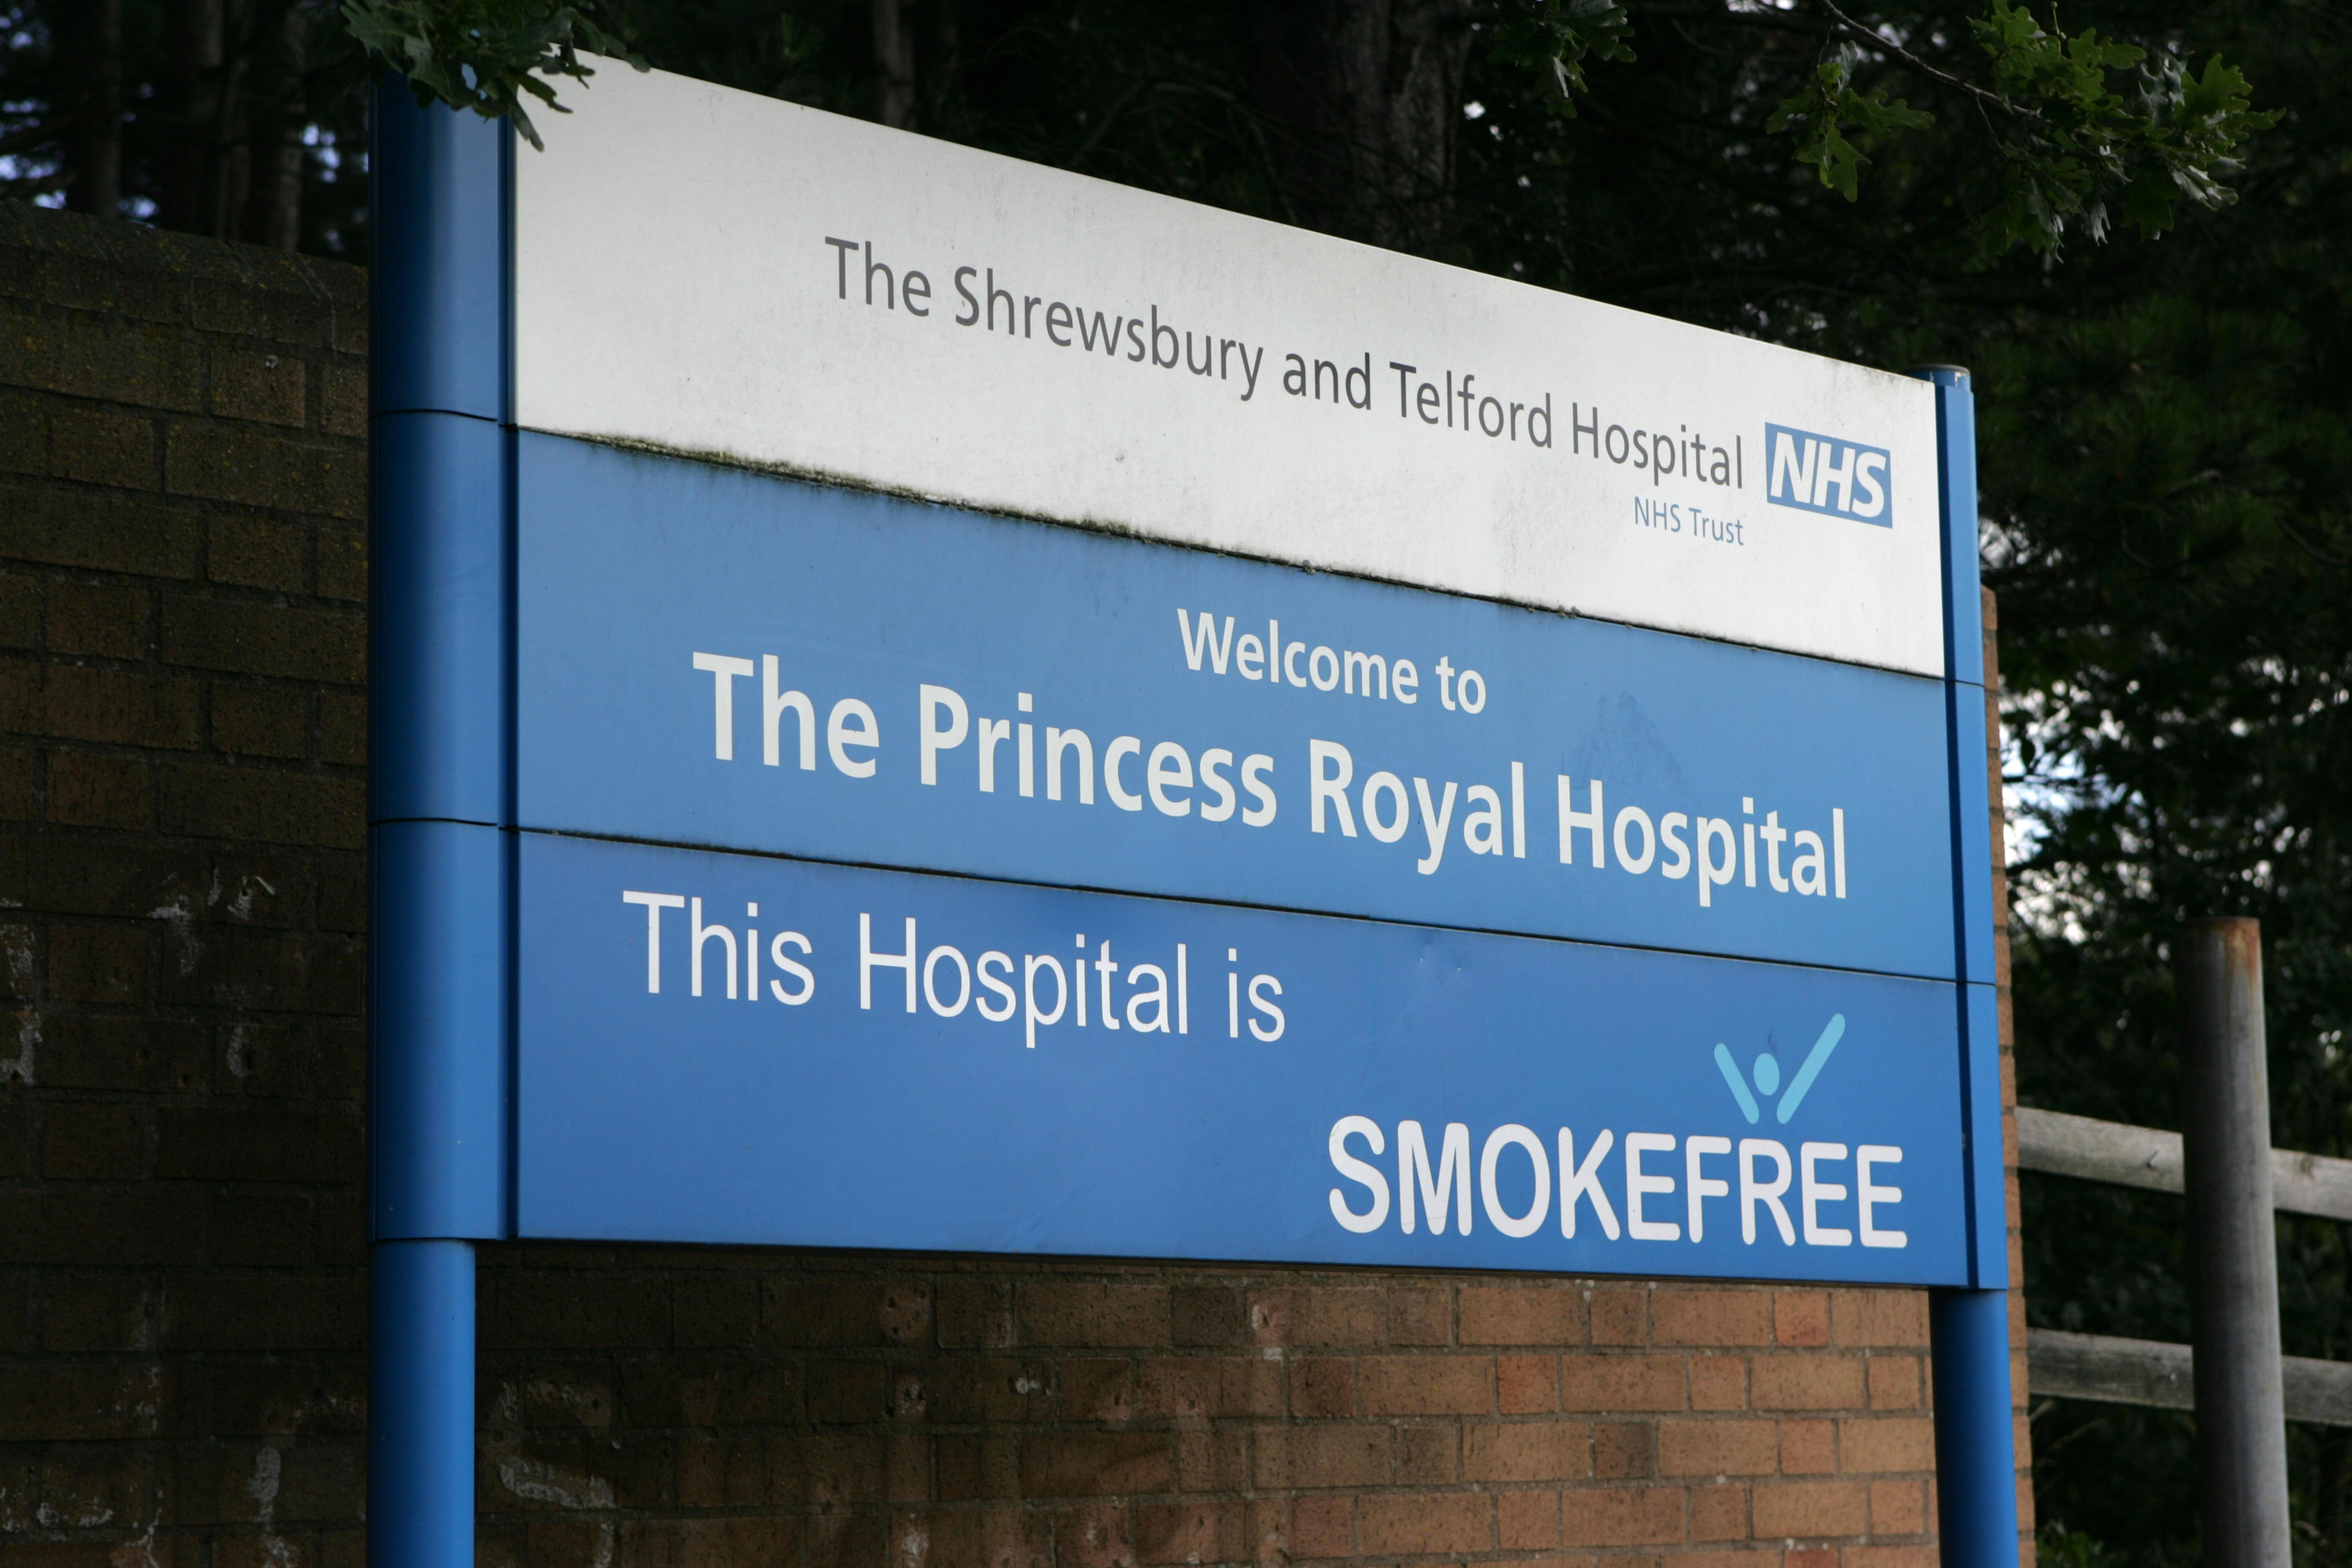 The Princess Royal Hospital, which is part of the The Shrewsbury and Telford Hospital NHS trust